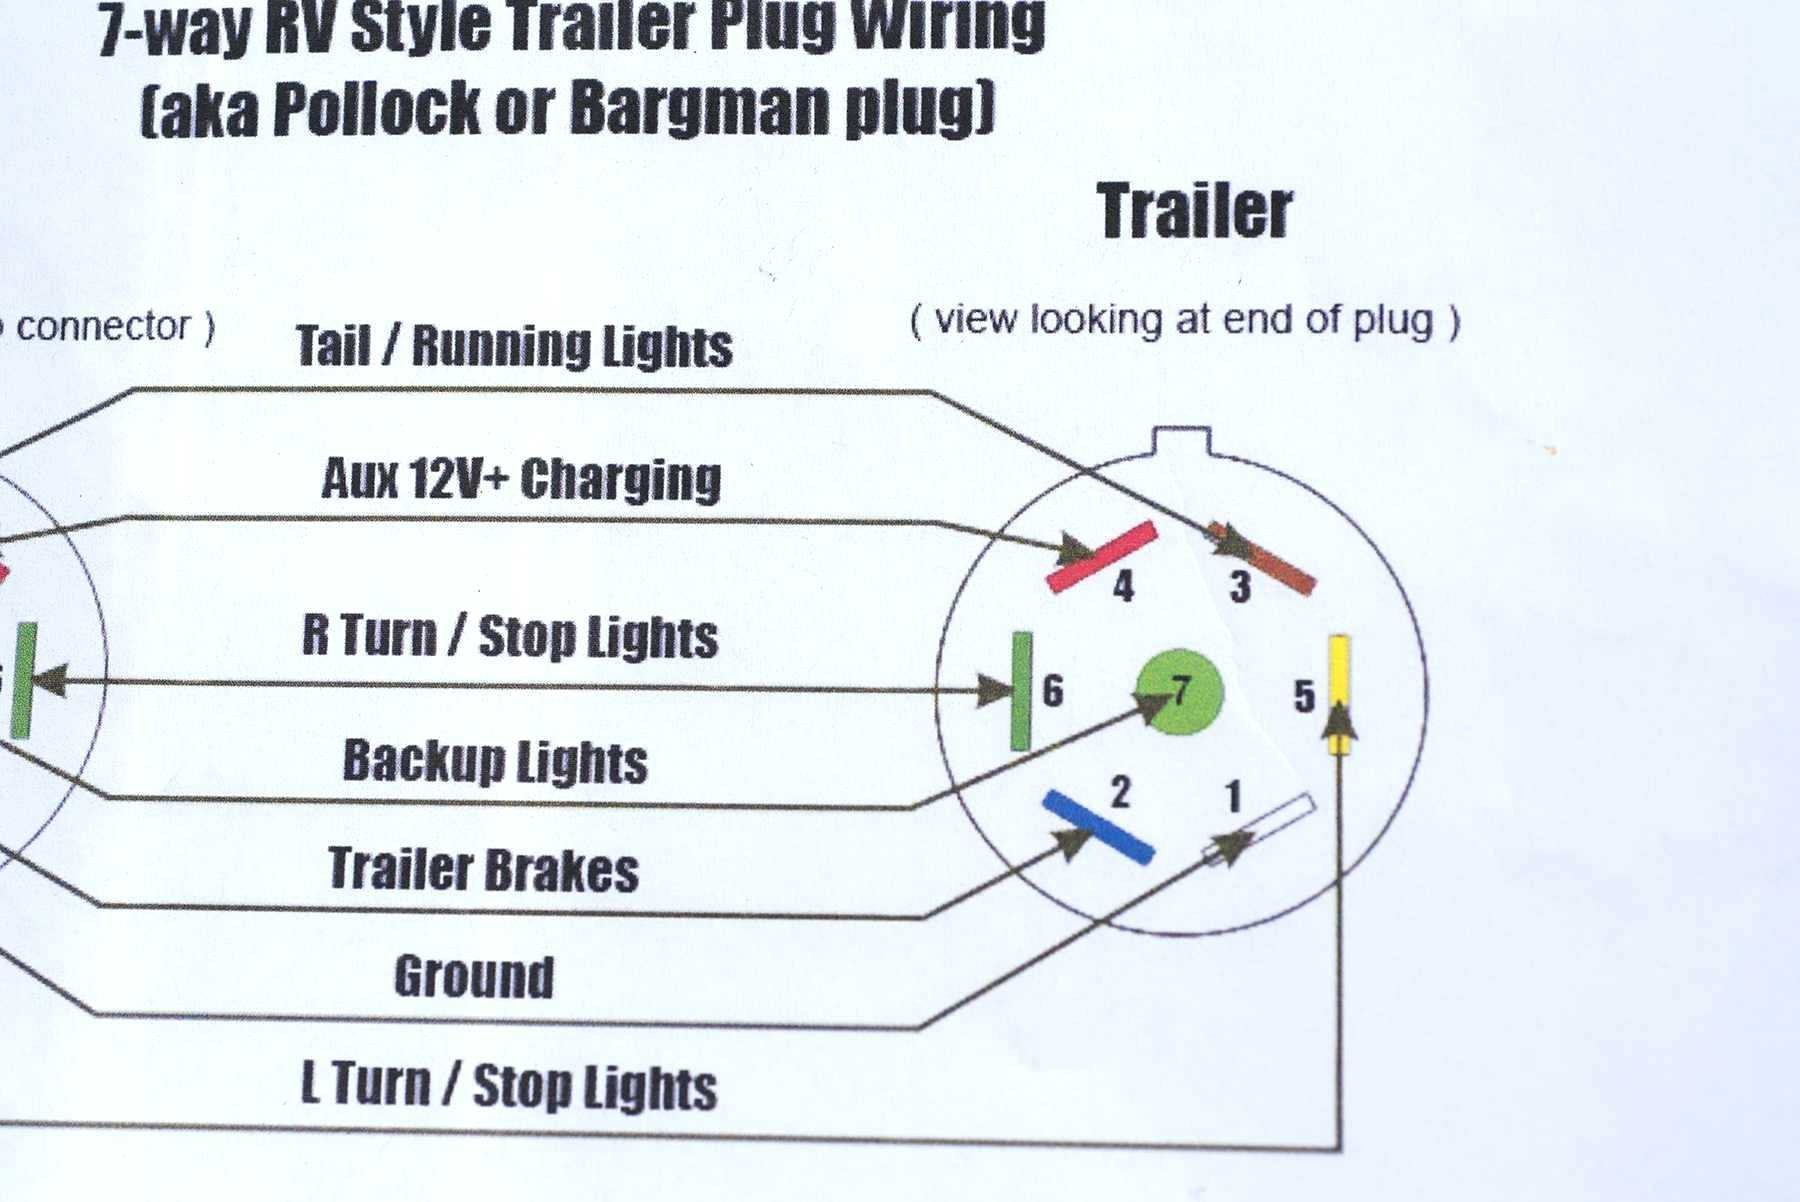 Chevy Trailer Wiring Harness Diagram 7 Pin To 4 | Wiring Diagram - Chevy 7 Pin Trailer Wiring Diagram